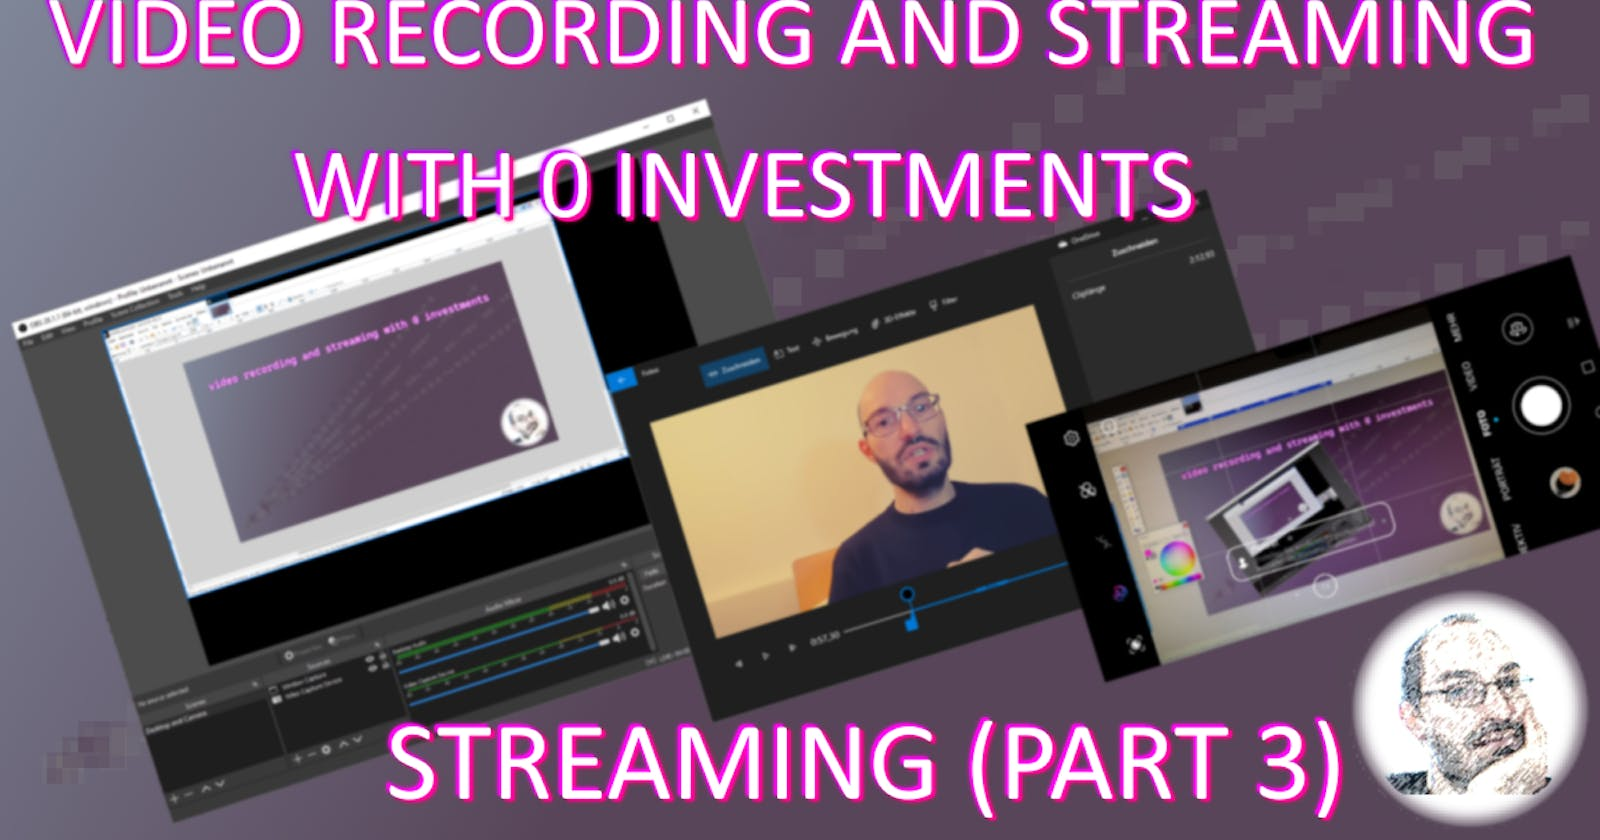 Video recording and streaming with 0 investments - streaming